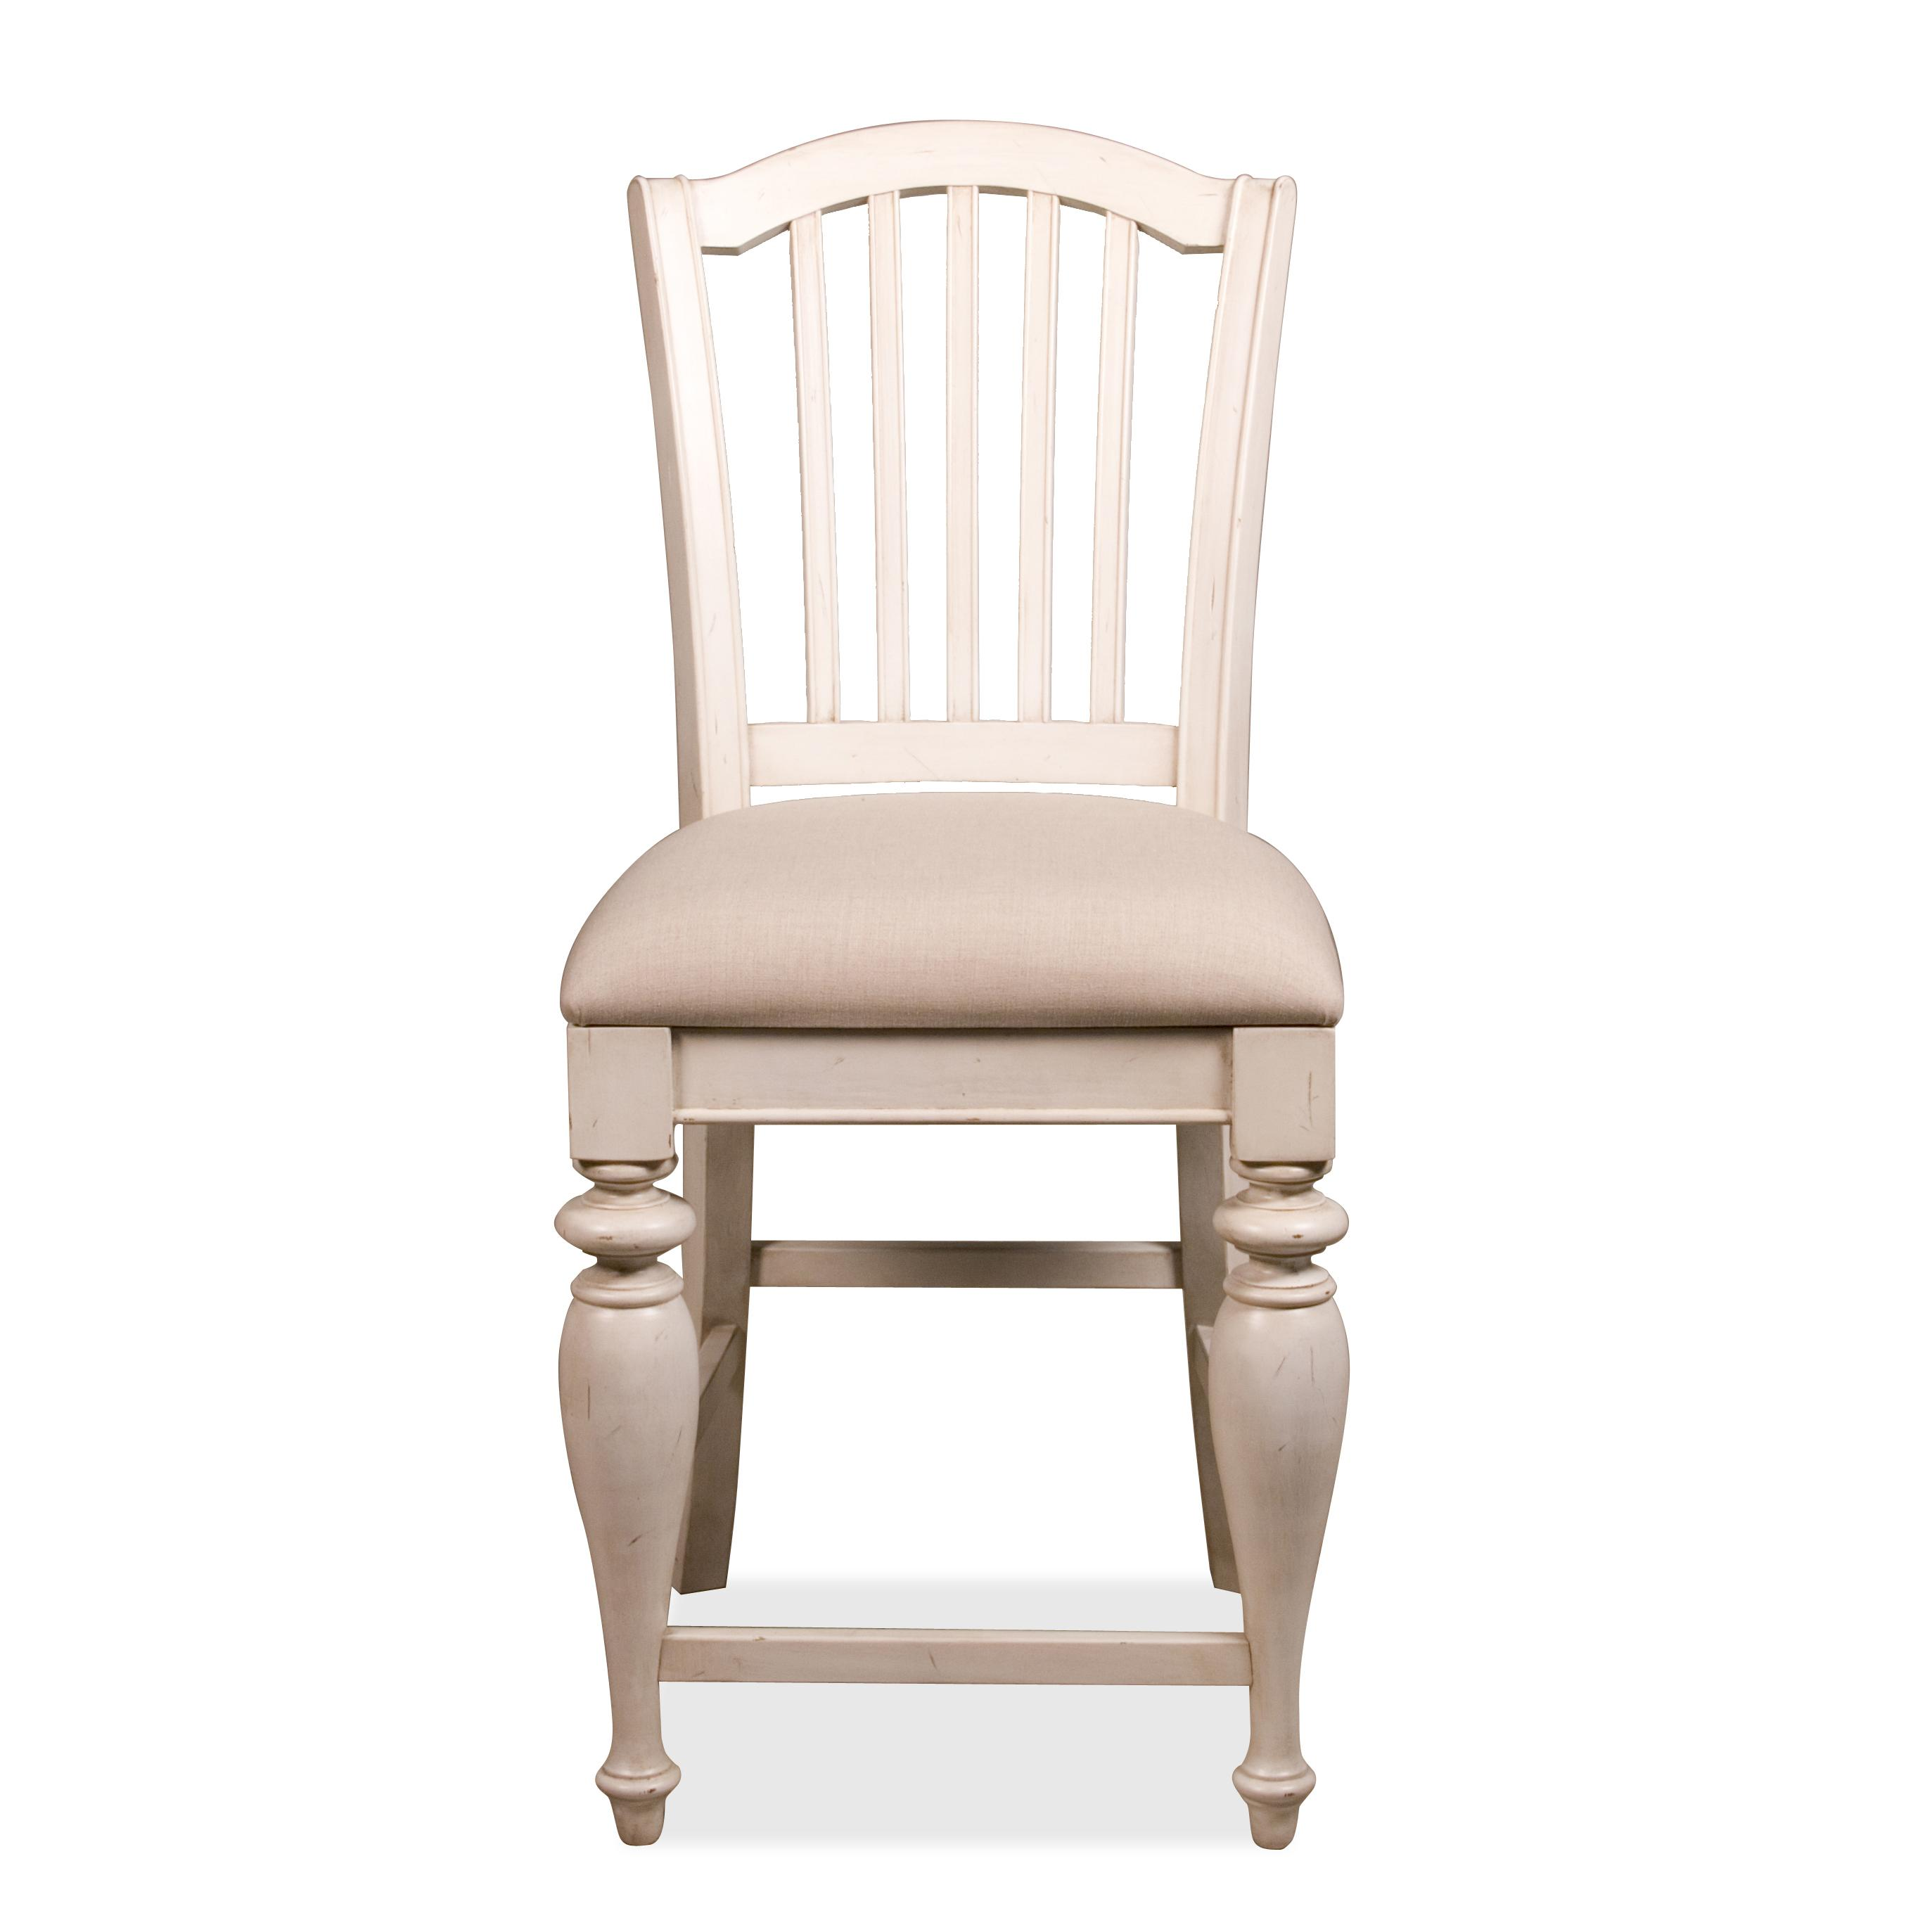 chair and stool heights swing vancouver riverside furniture mix n match chairs 36459 counter